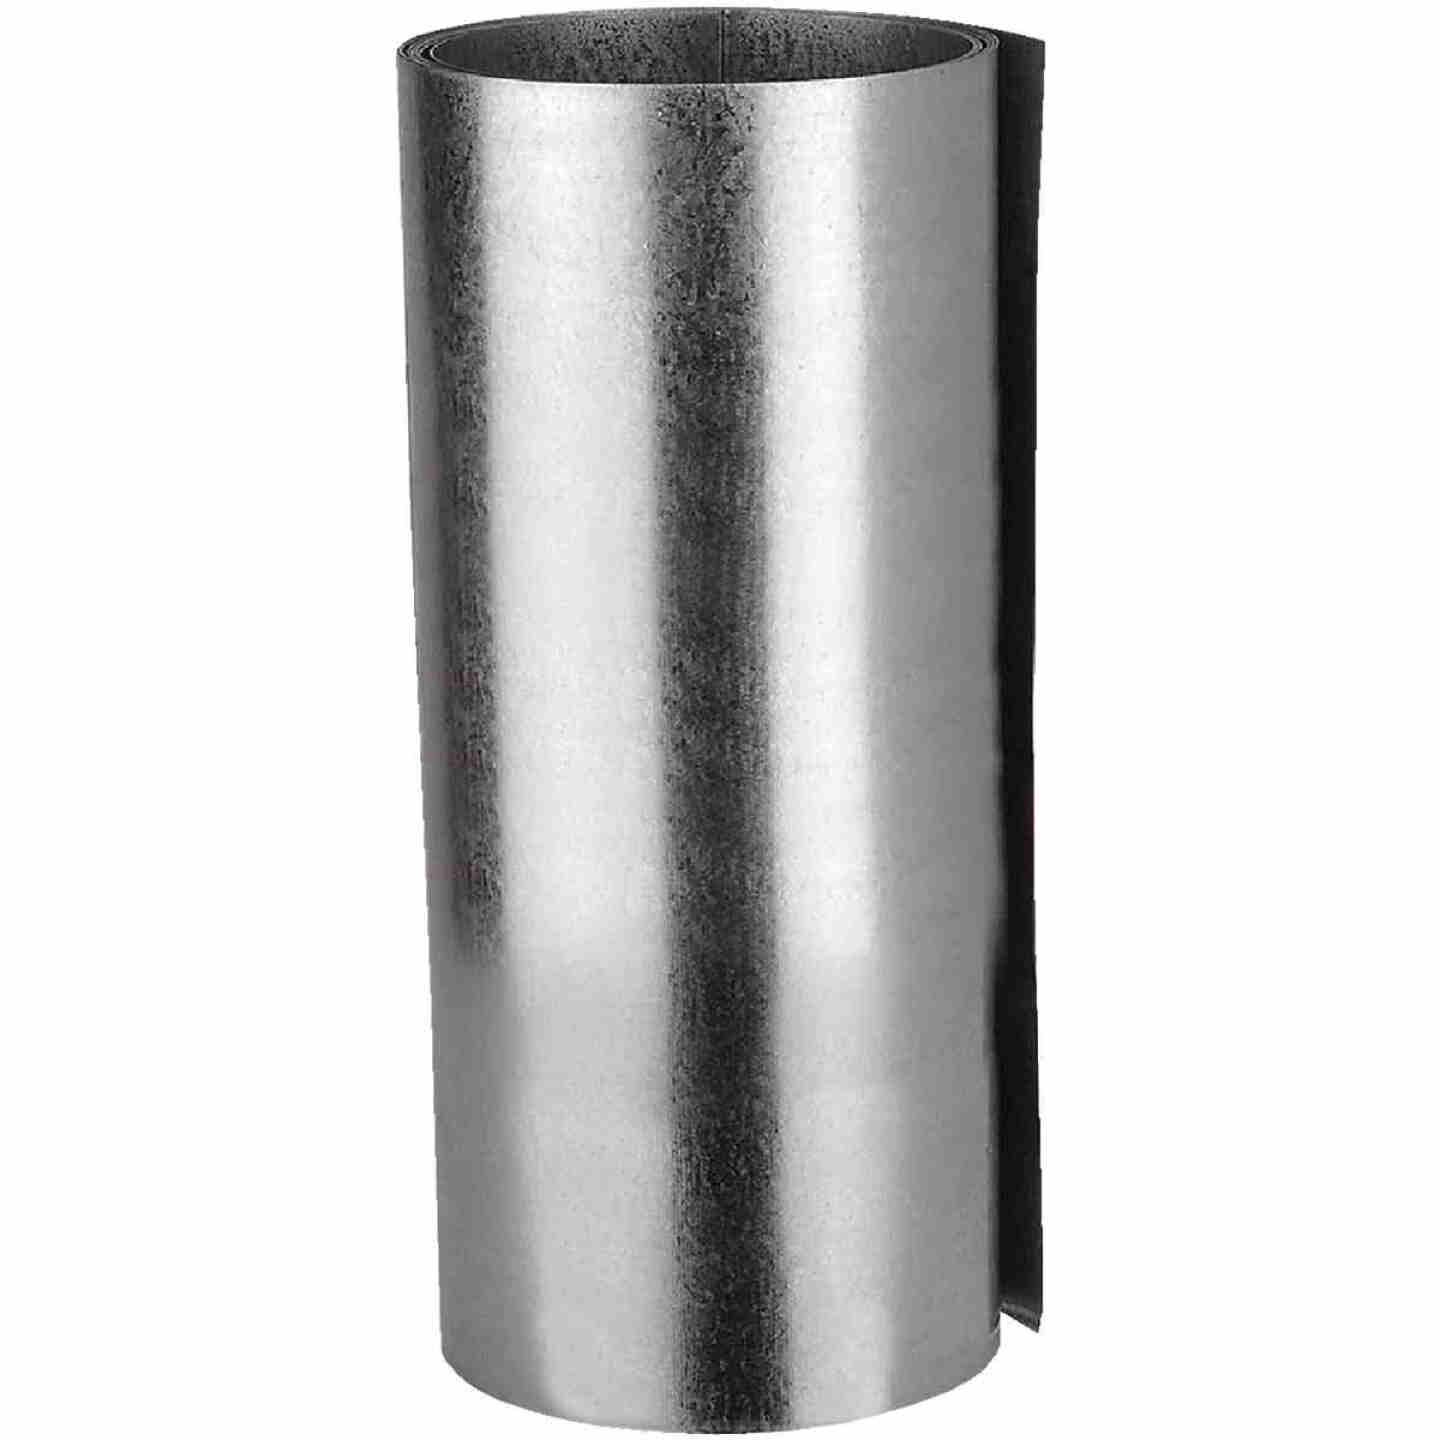 NorWesco 14 In. x 50 Ft. Mill Galvanized Roll Valley Flashing Image 1